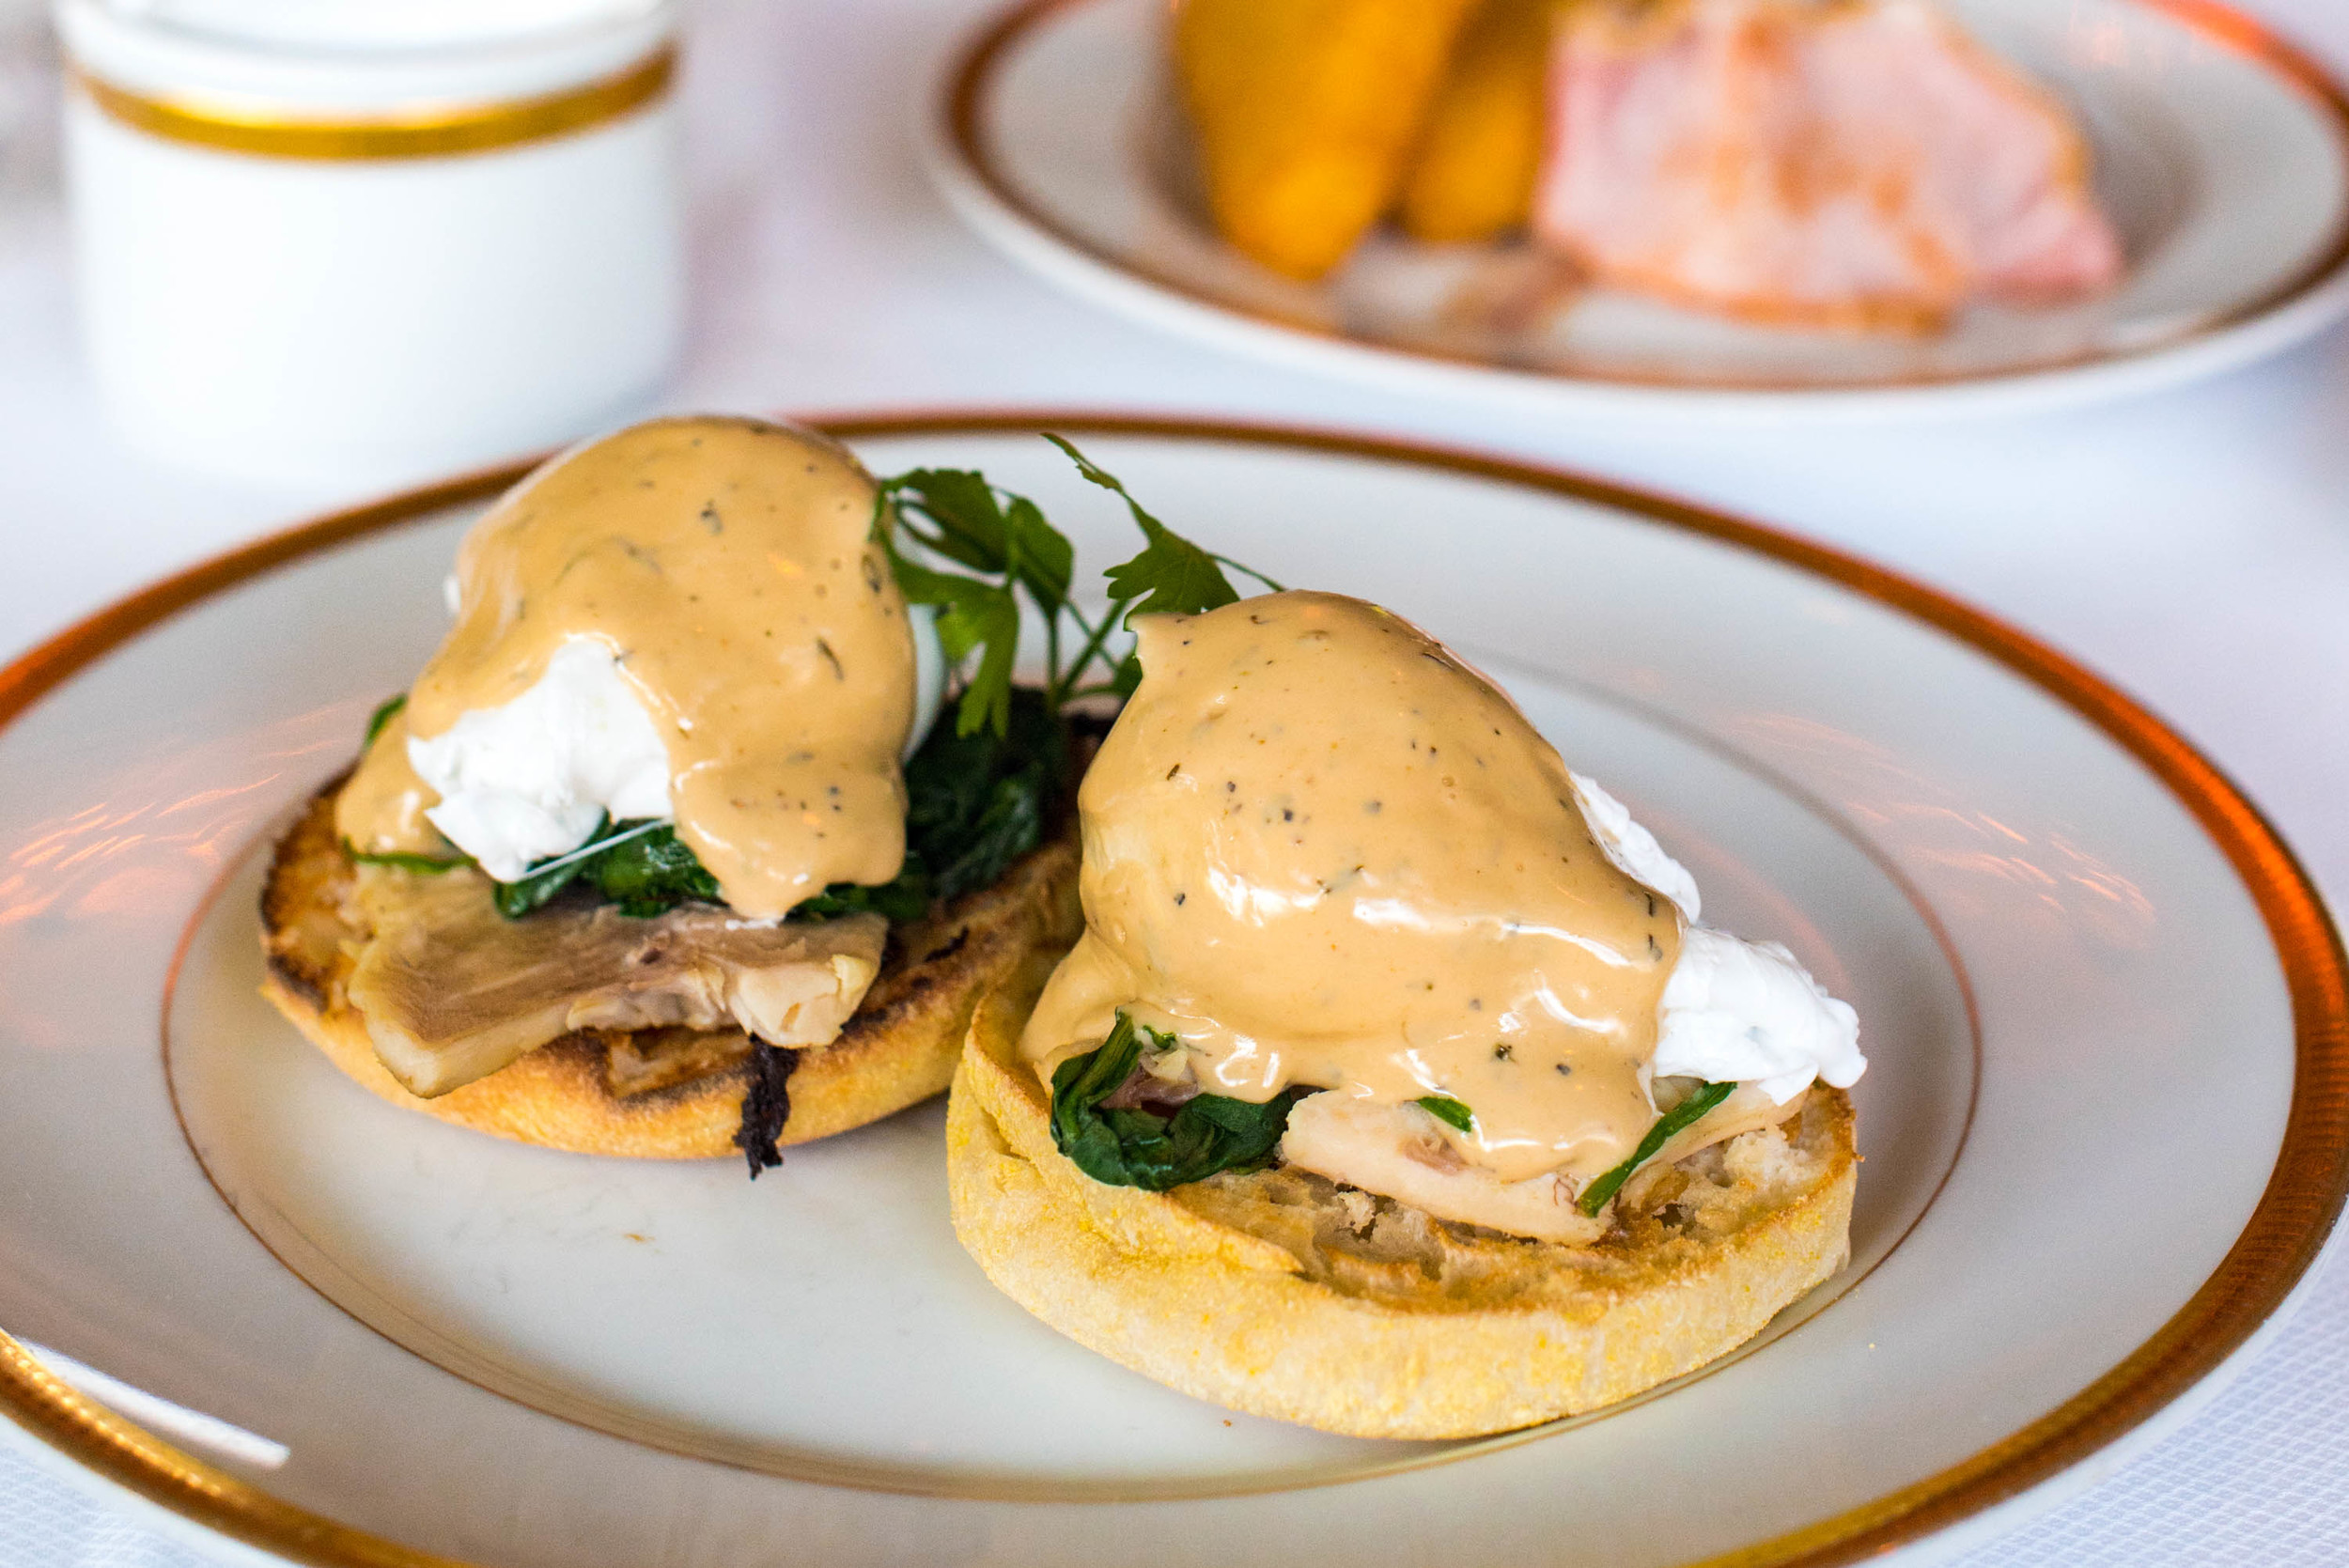 Smoked Ocean Trout, Spinach and Bearnaise Sauce - Breakfast   Valley Wing - Shangri-La Hotel, Singapore